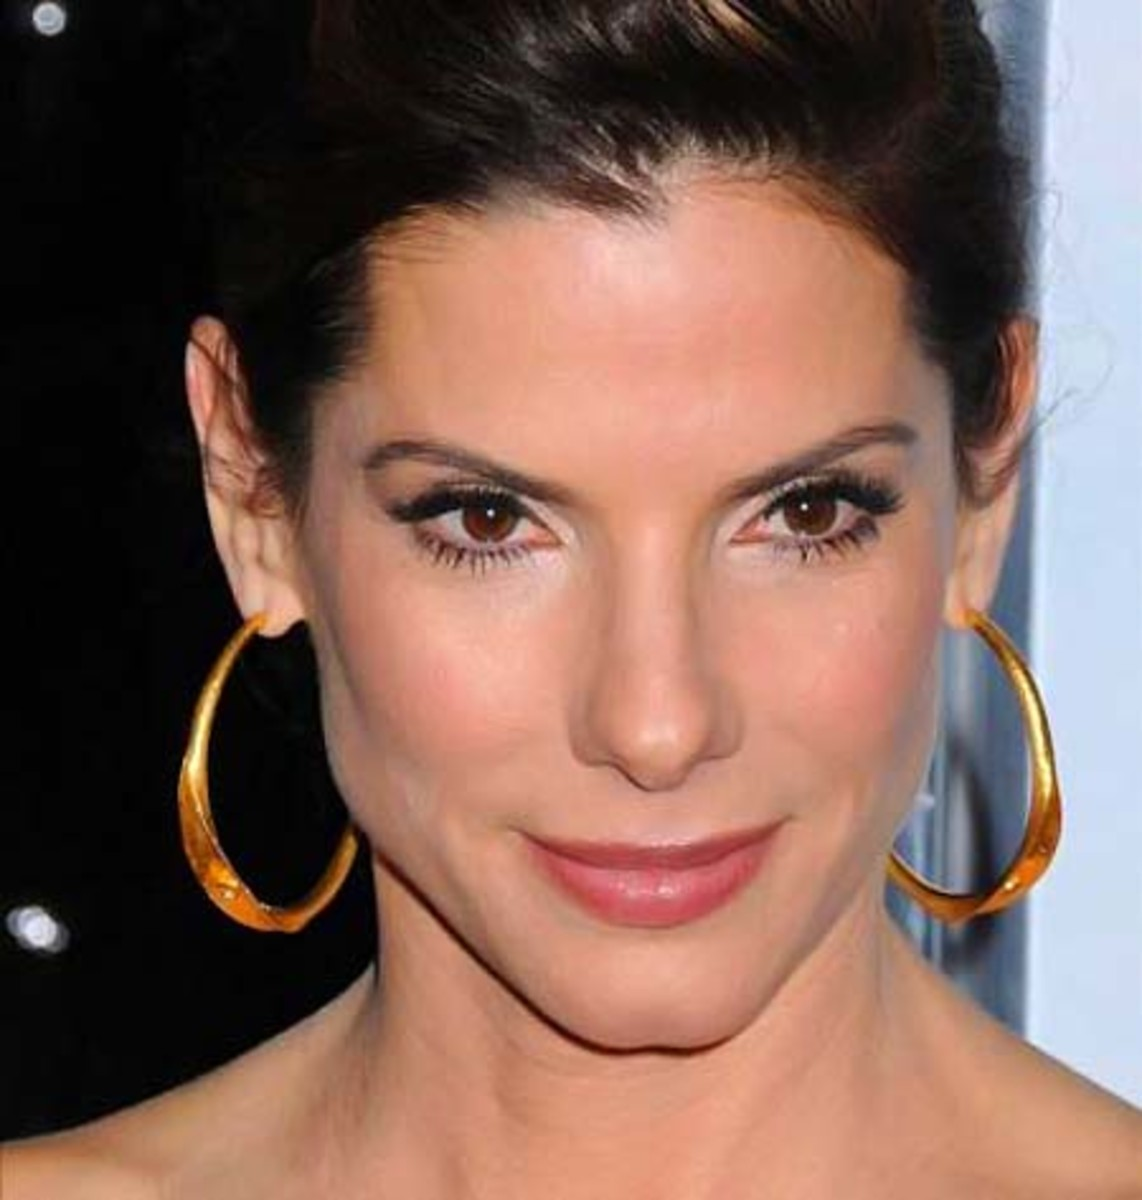 Multiplicity Many Eye Makeup Faces Of Sandra Bullock Beautygeeks